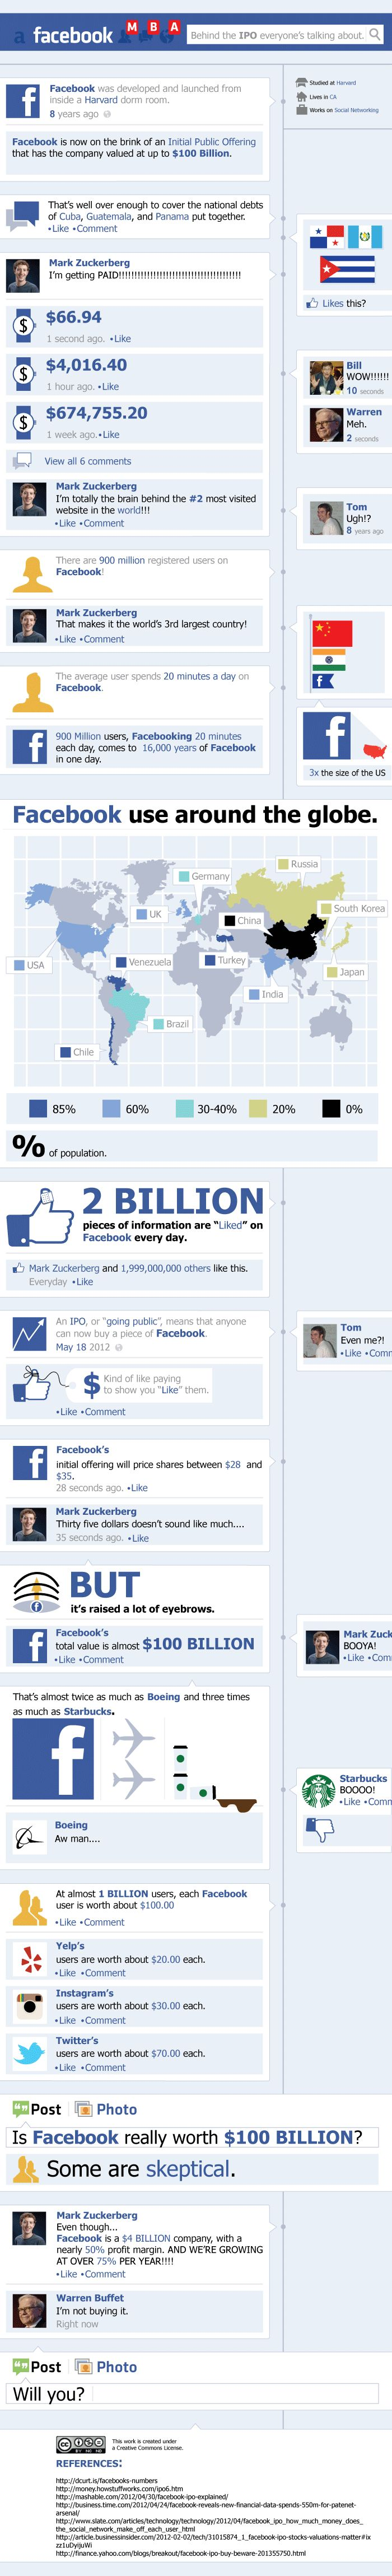 Facebook MBA: Behind the IPO Everyone's Talking About. We all know that Facebook Rocks! Love it or HATE it, Facebook has really changed the world, how we communicate and even how we market our businesses. Facebook's IPO has been speculated about for quite a while so now that it's here, what does it mean for you? Take a look at the infographic below to view Facebook's journey.